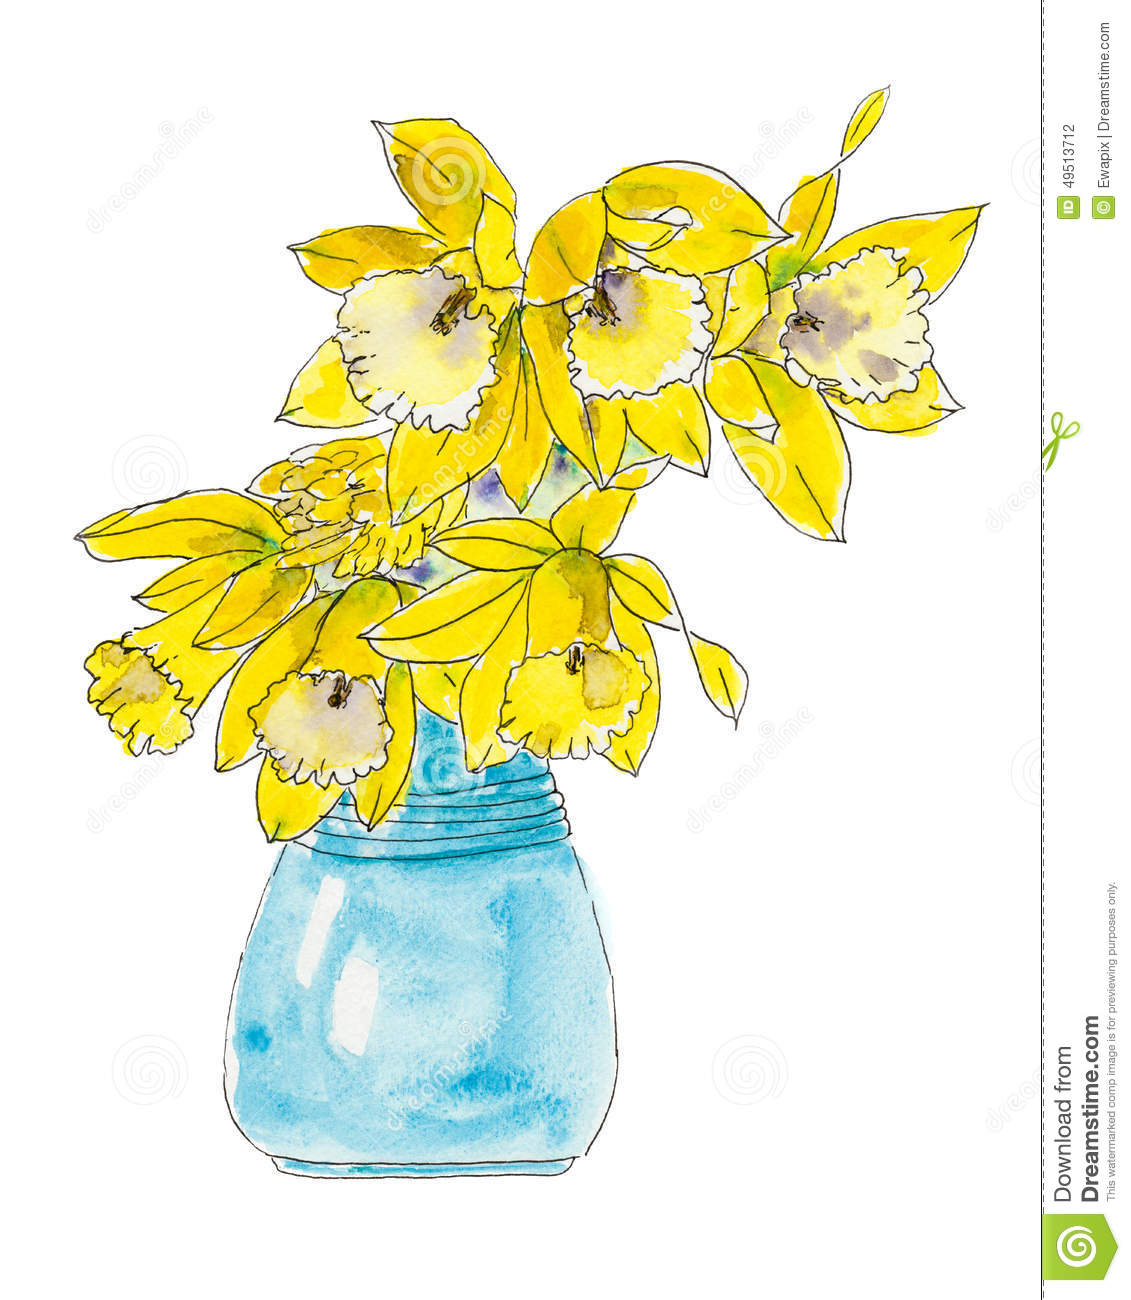 how to draw daffodils in a vase